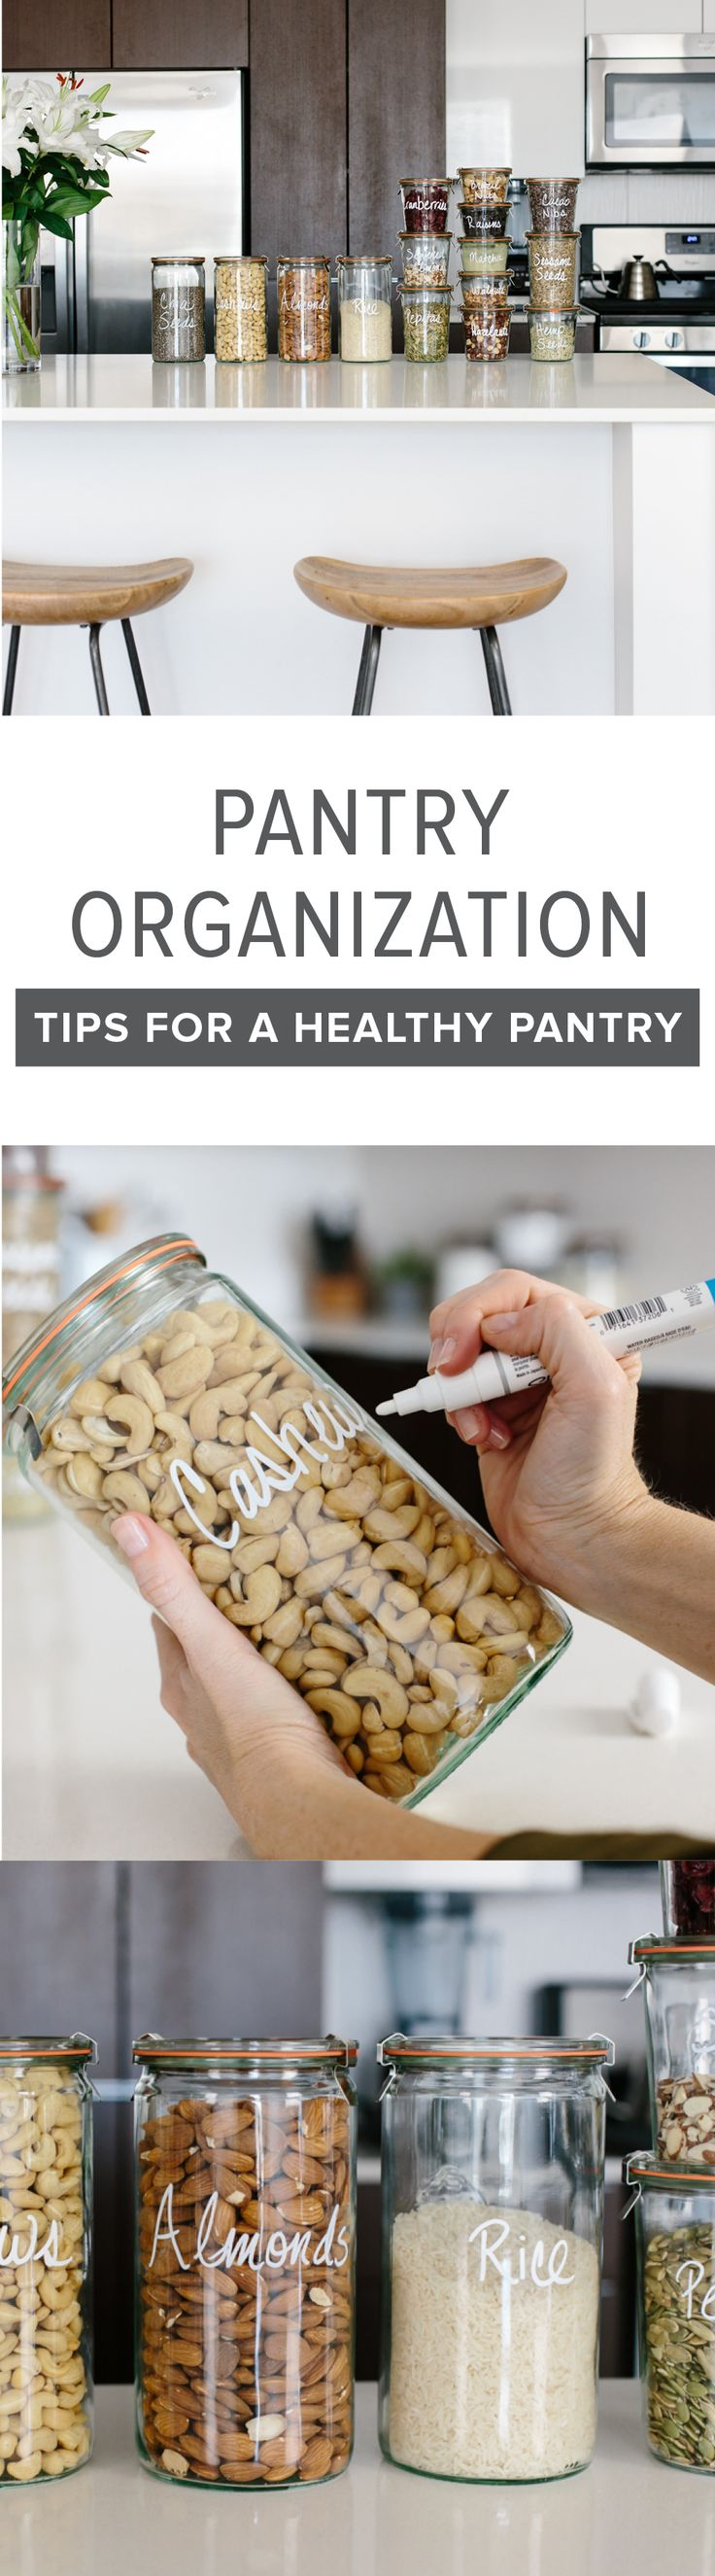 best 20 glass storage jars ideas on pinterest kitchen canisters pantry organization tips for a creating a healthy pantry glass containersglass